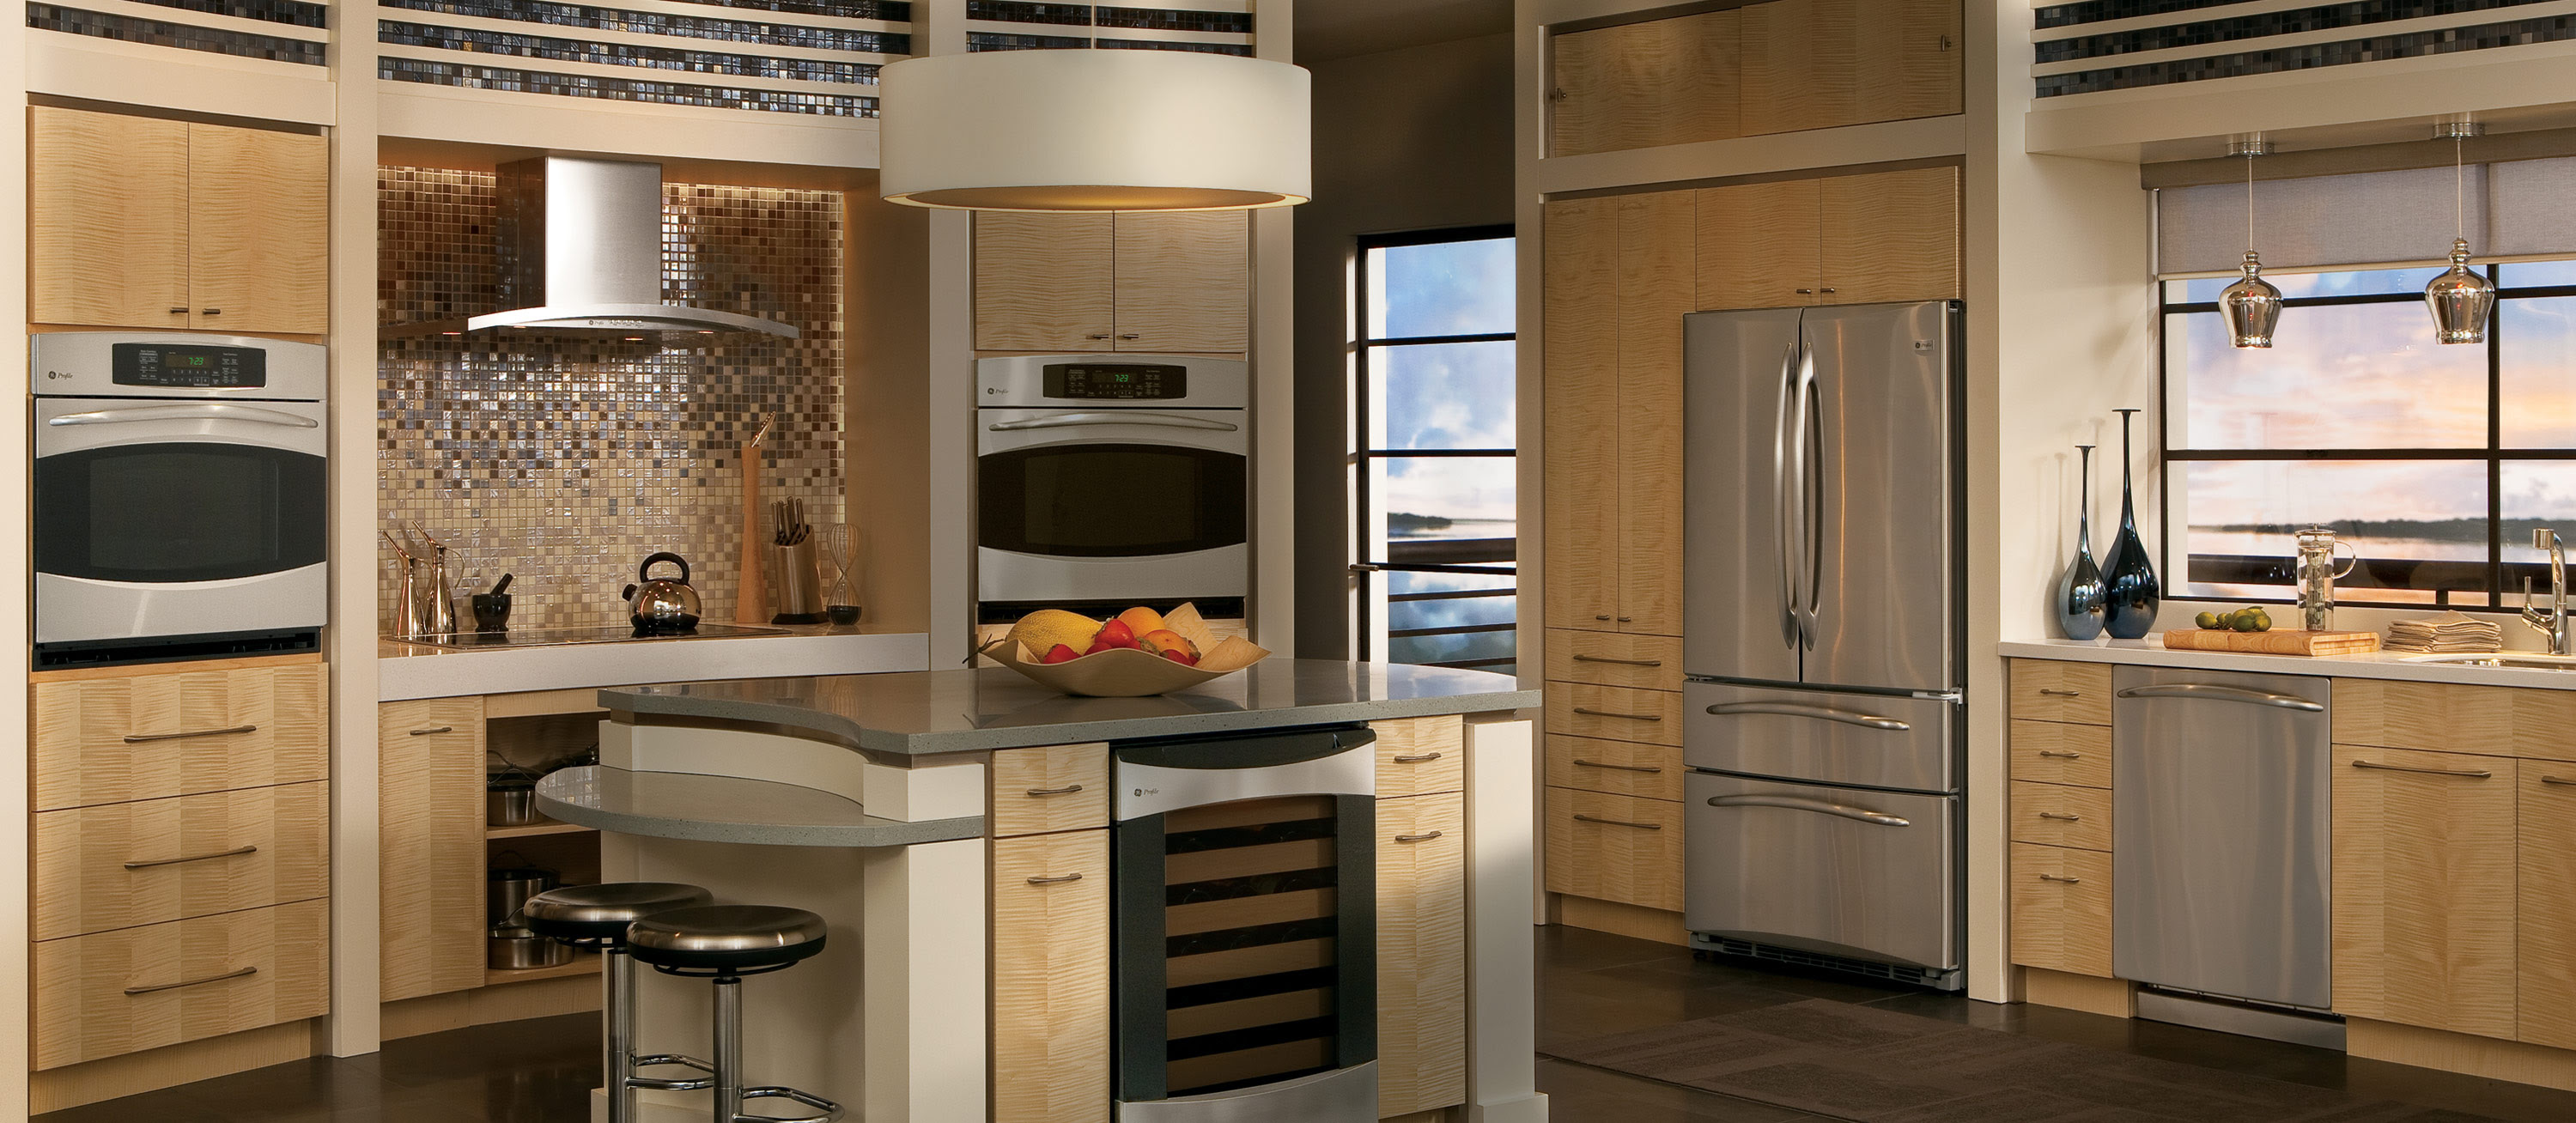 Best Application of Large Kitchen Designs Ideas - My ...